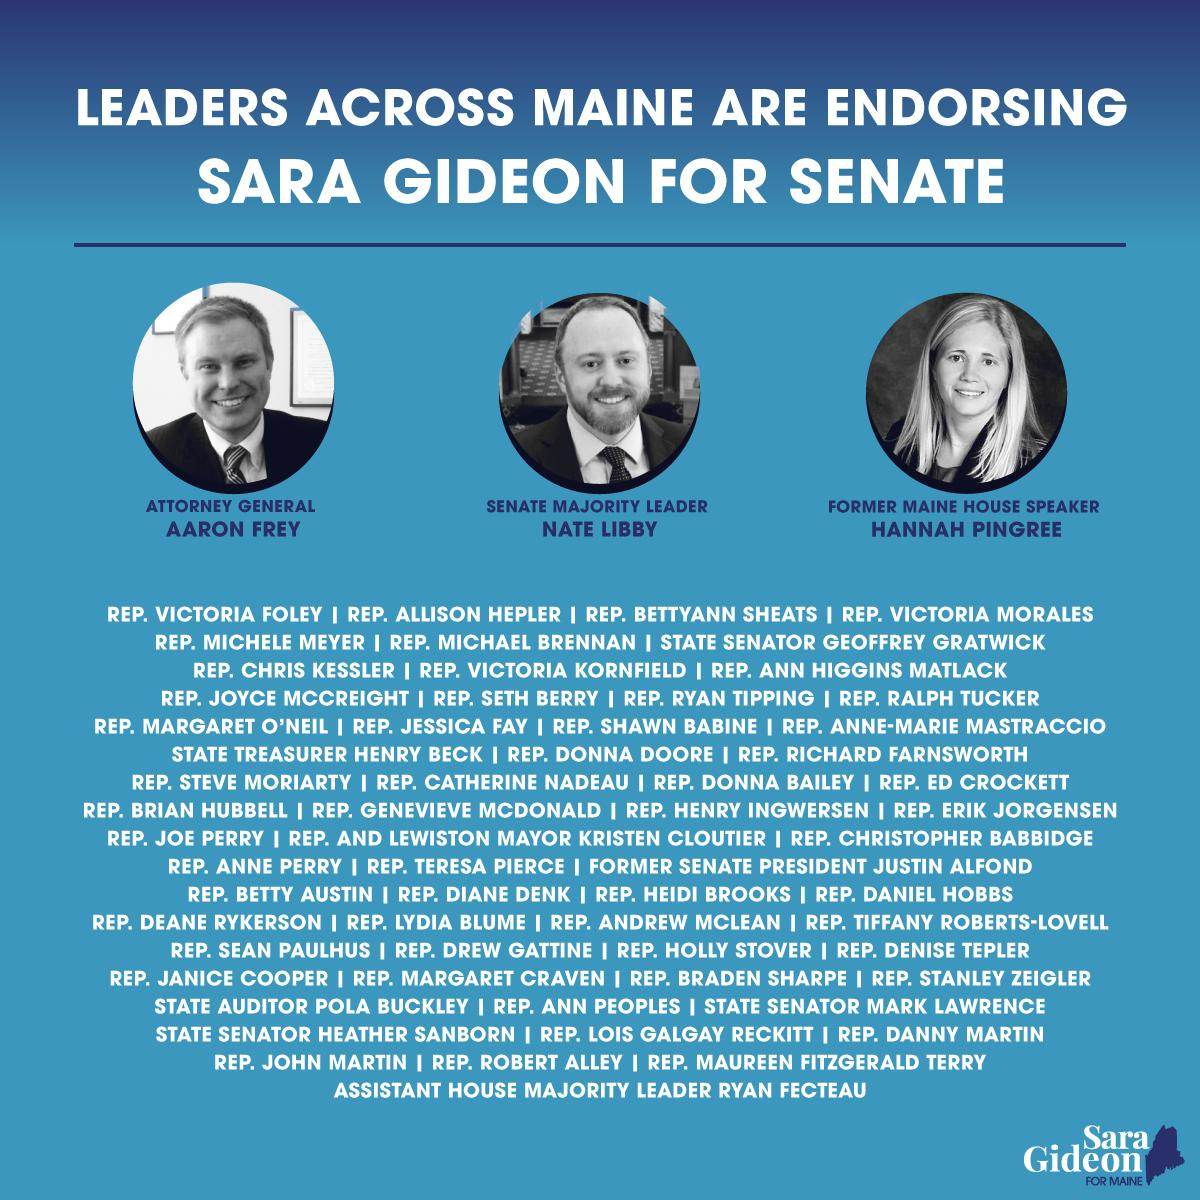 I'm running for #MESen to defeat Susan Collins & put Mainers first. That starts with YOUR support. I'm proud to have earned the endorsement of ME Attorney General Aaron Frey, ME Senate Majority Leader @Nate_Libby, former ME House Speaker @PingreeHannah & so many more. #MEpolitics<br>http://pic.twitter.com/nY8yfn1FnM